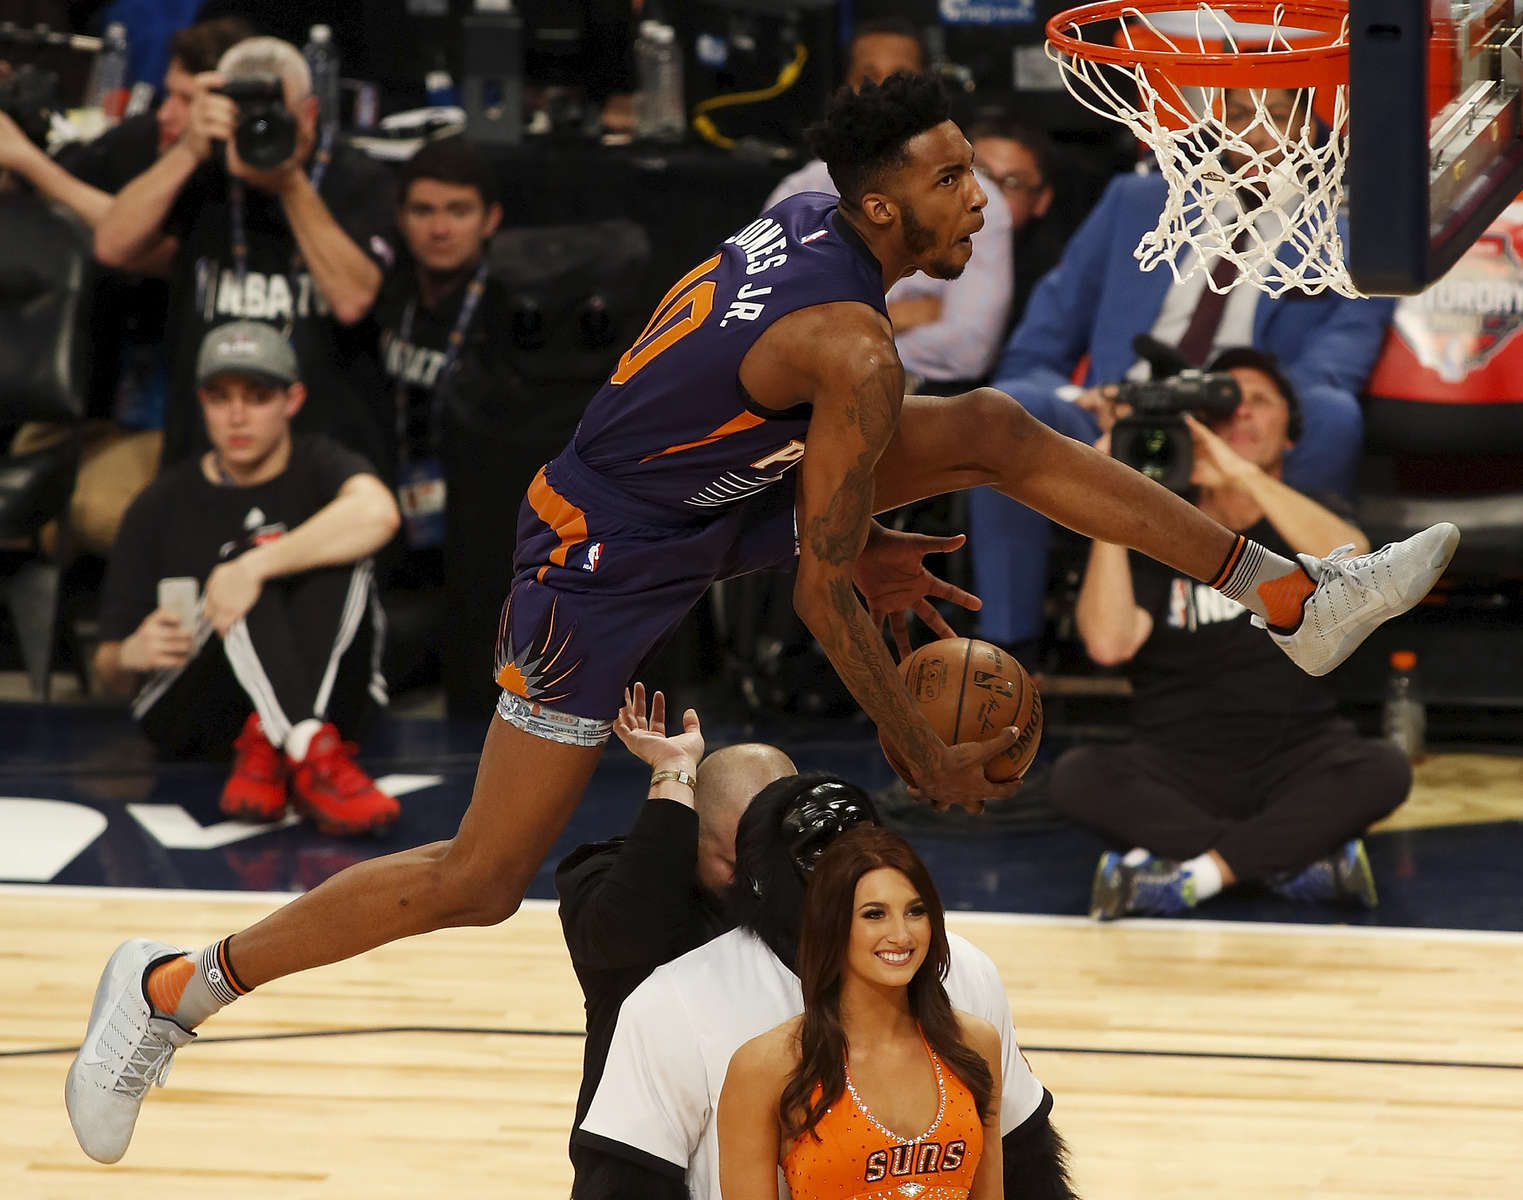 Phoenix Suns forward Derrick Jones Jr. (10) leaps over three people during the slam-dunk contest as part of the NBA All-Star Saturday Night events in New Orleans, Saturday, Feb. 18, 2017. (AP Photo/Max Becherer)